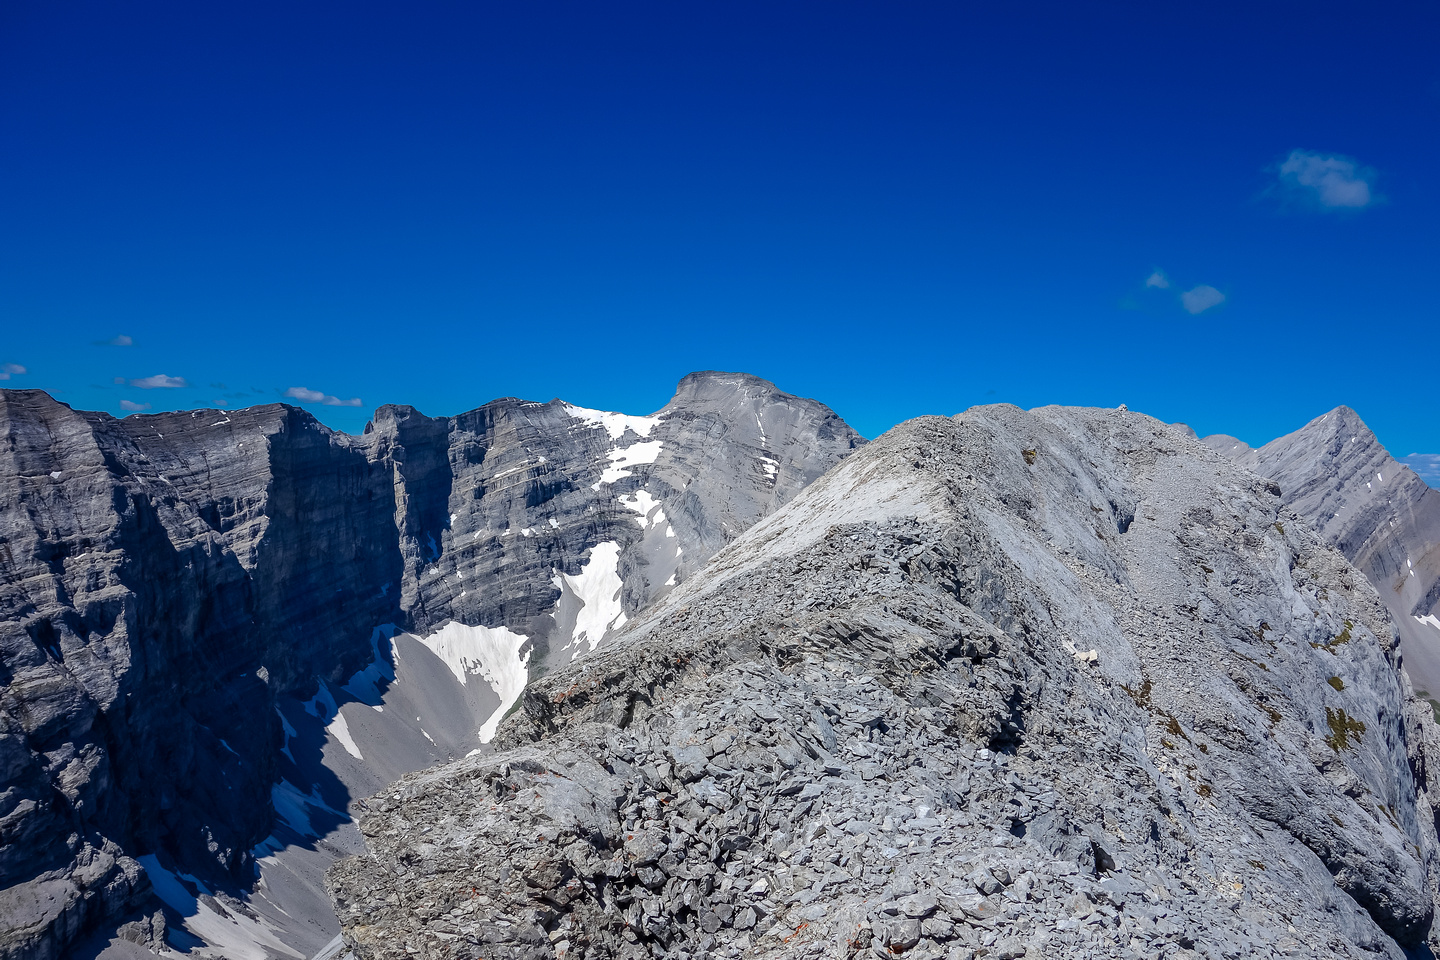 The final summit ridge stretches out in front of me on a glorious day to be scrambling.